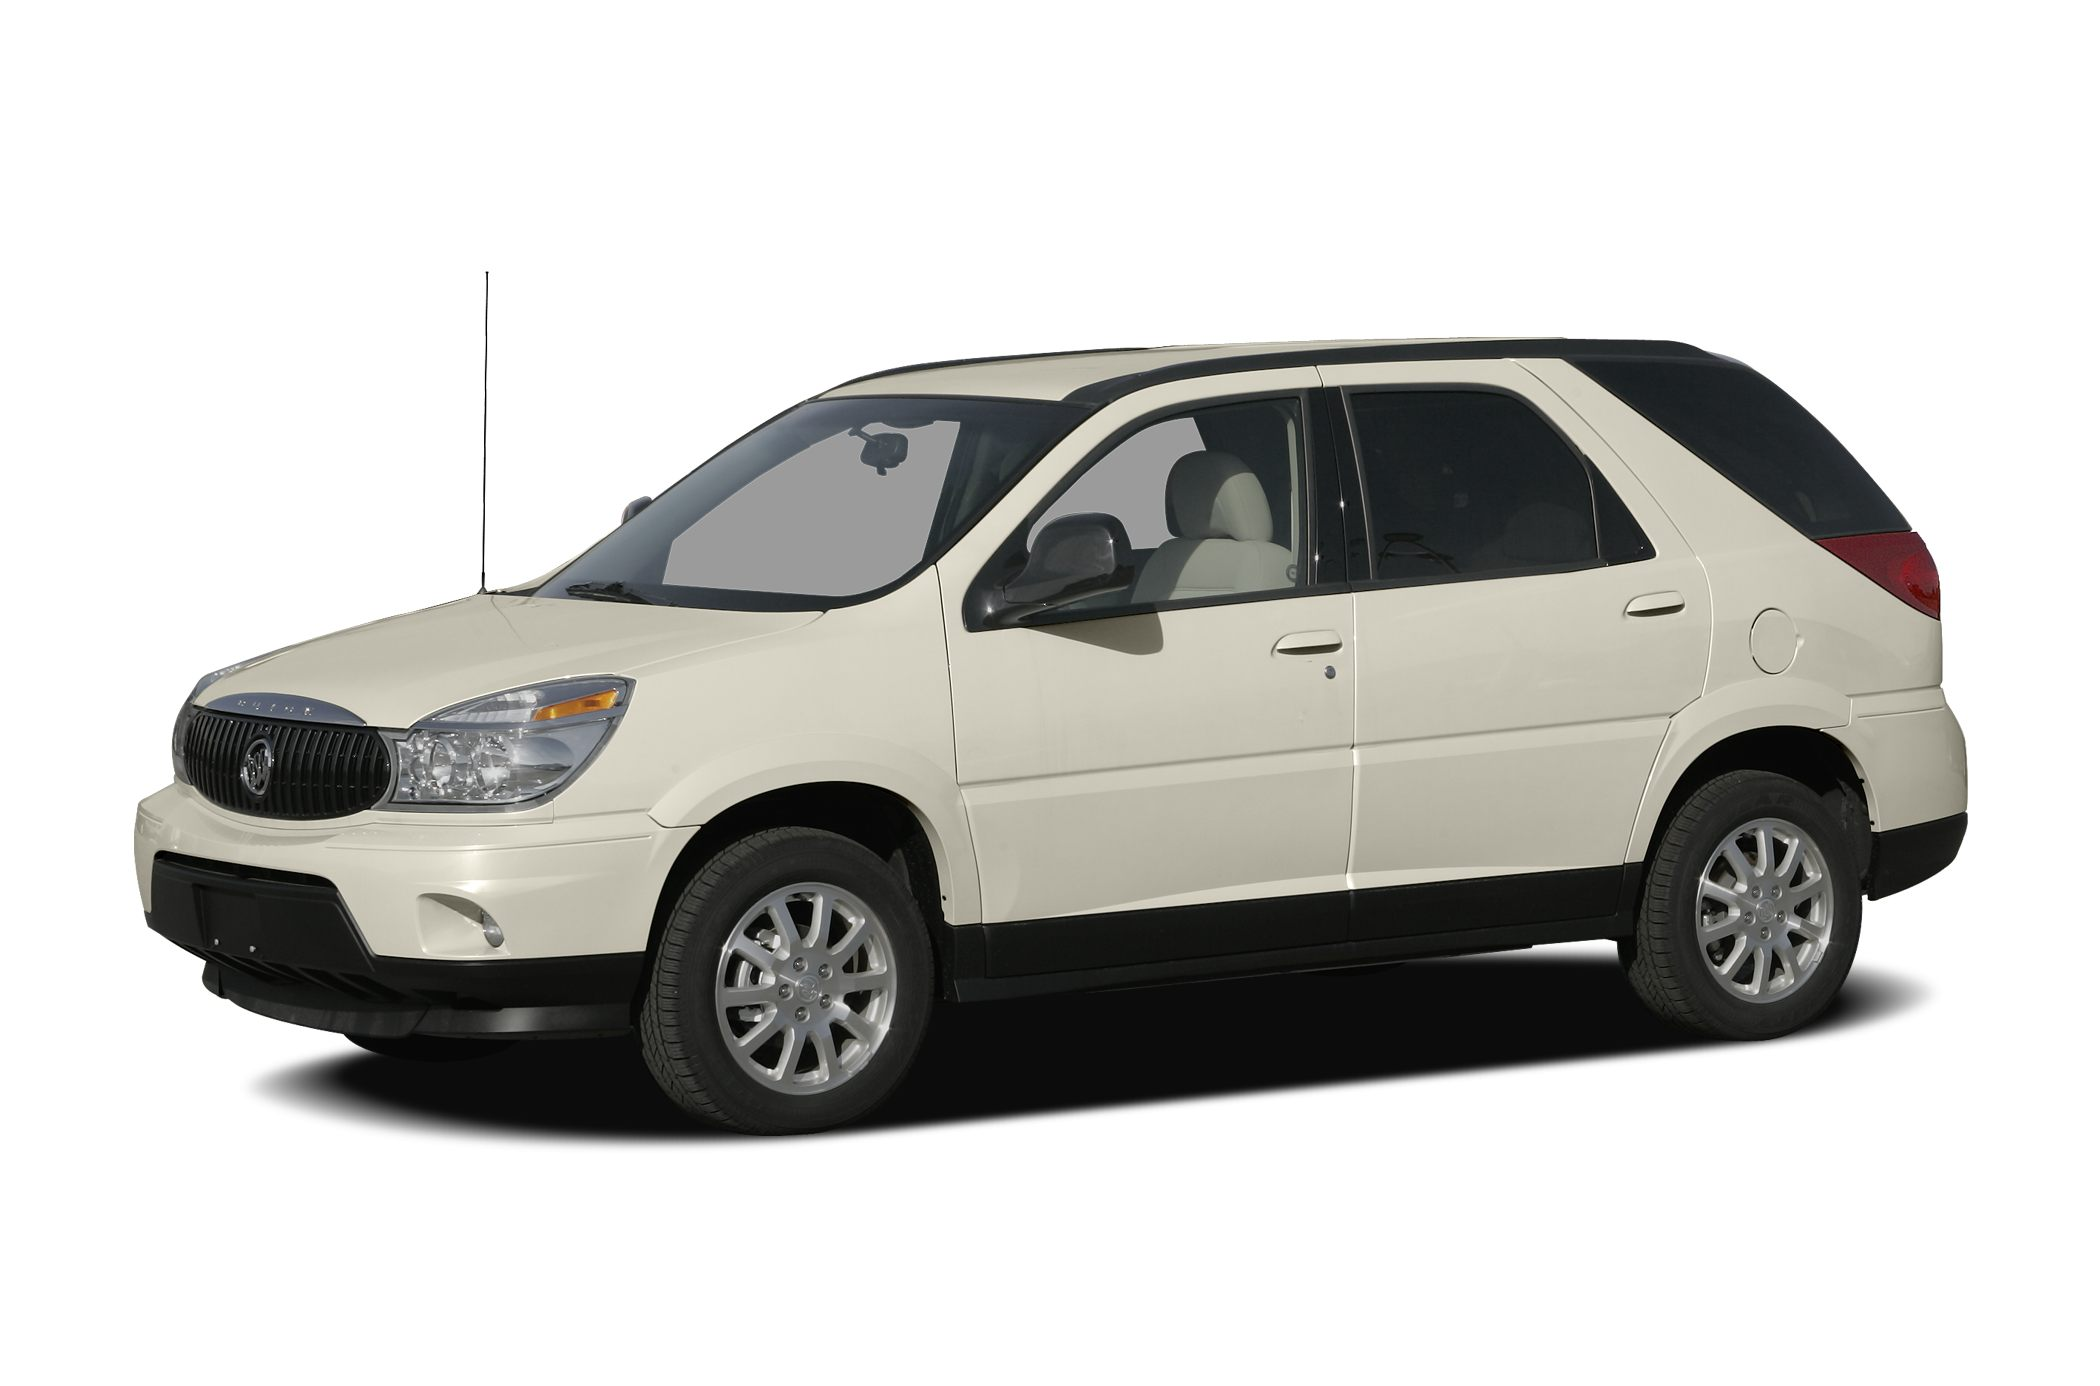 2007 Buick Rendezvous CX SUV for sale in Fort Wayne for $0 with 98,190 miles